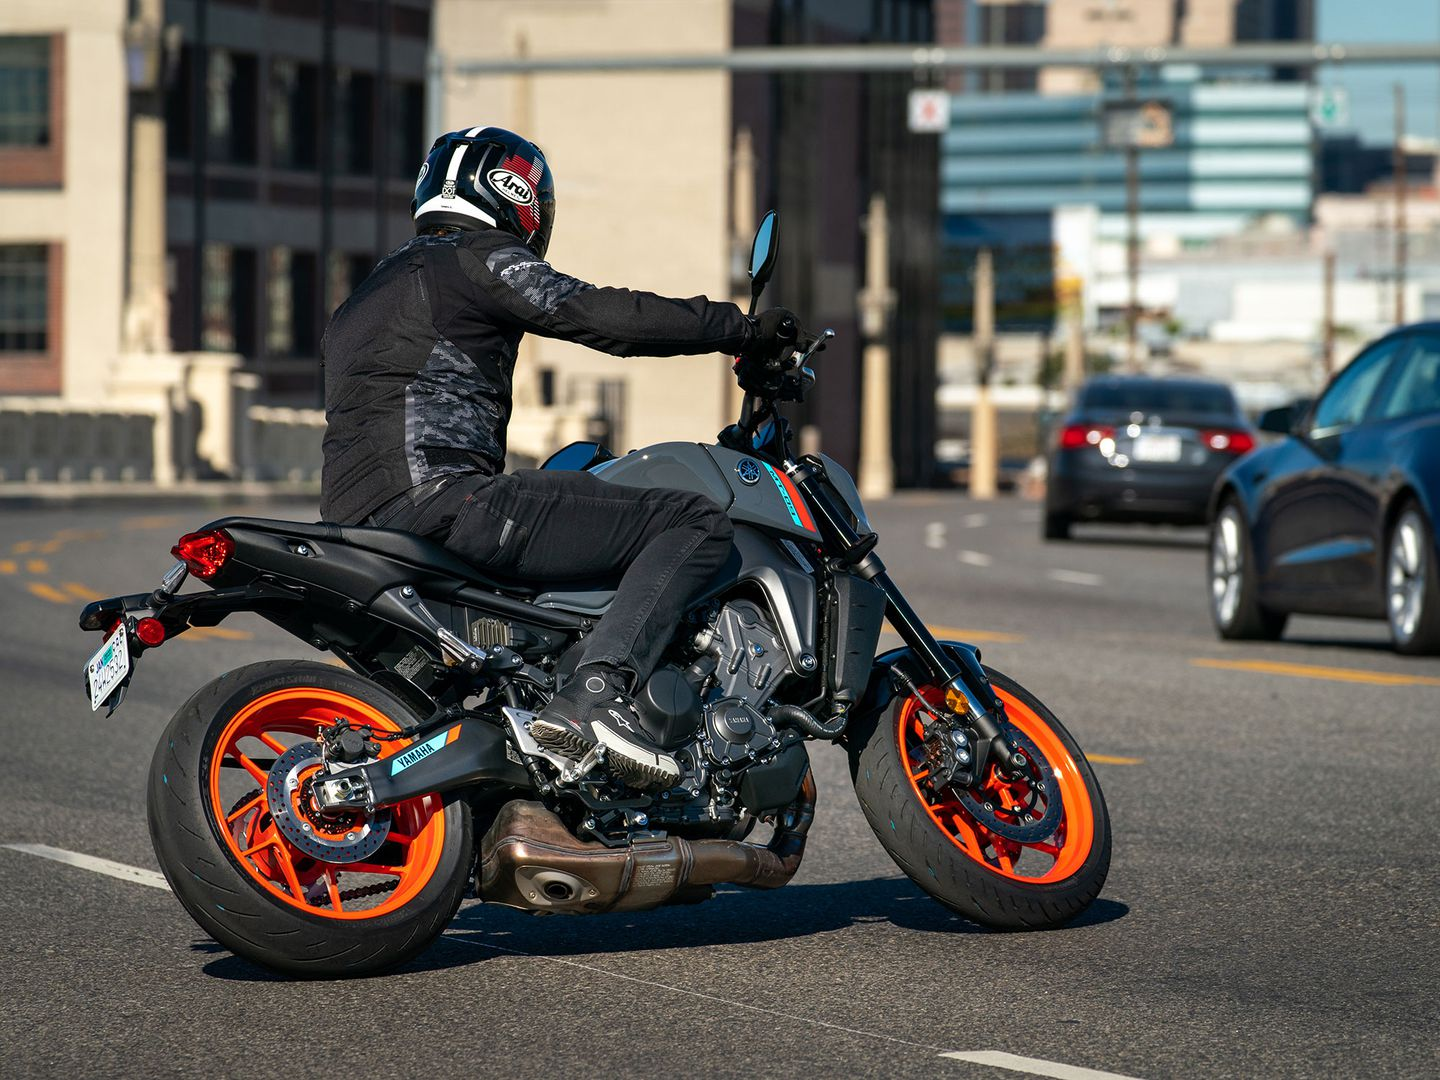 Riders Share Launches Subscription Motorcycle Rental Service